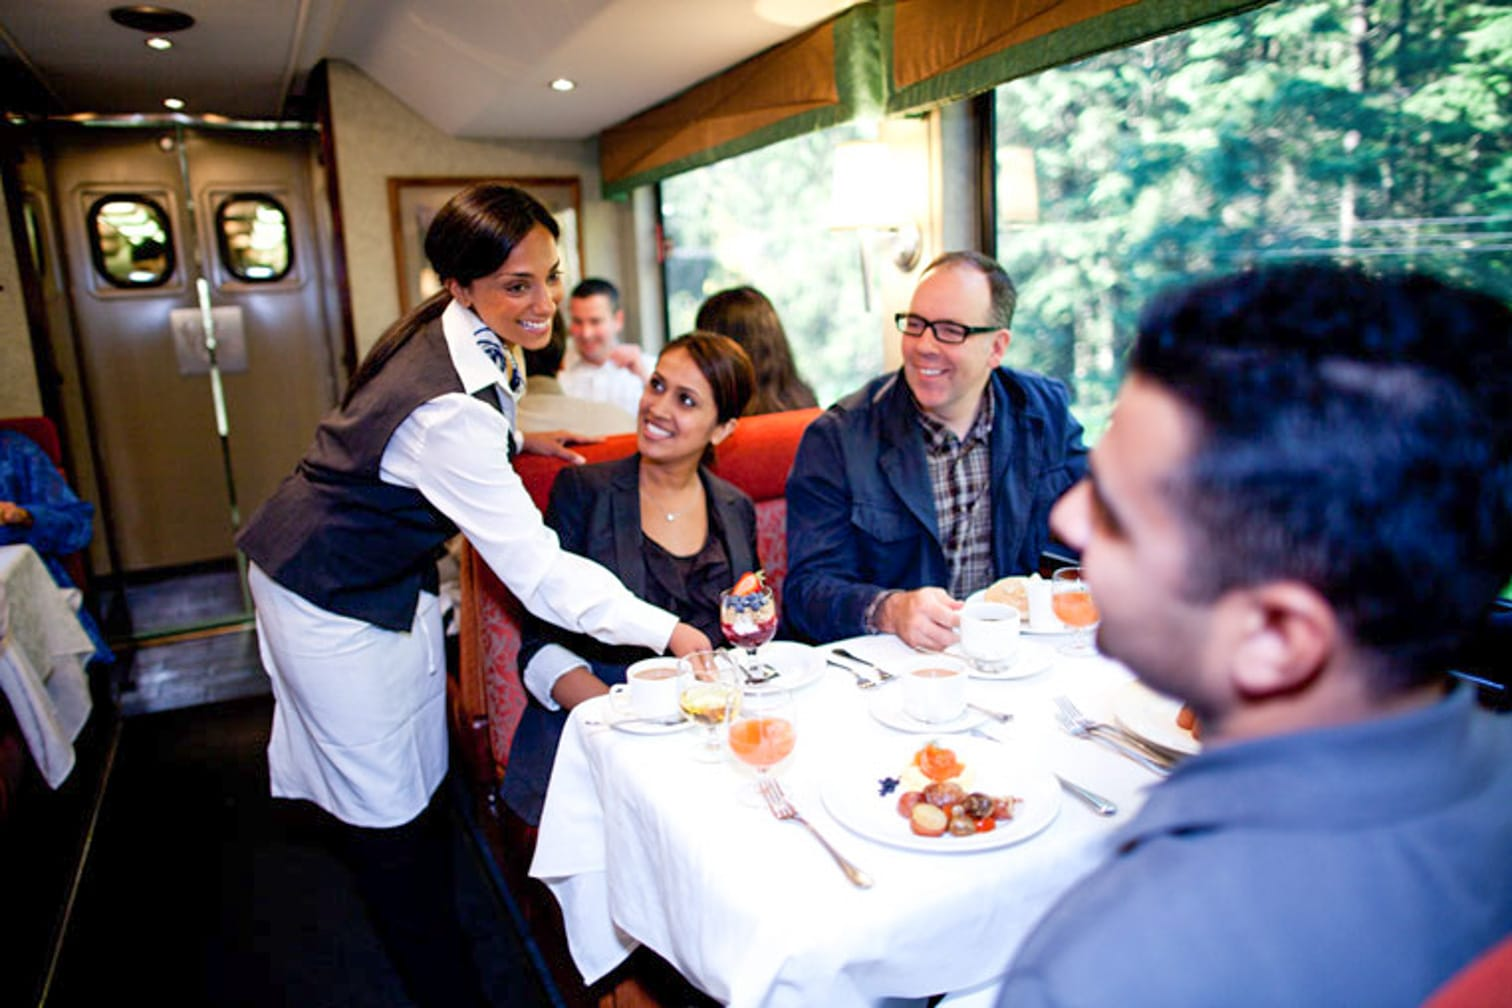 Serving guests food on the Canadian Rockies Getaway Circle journey